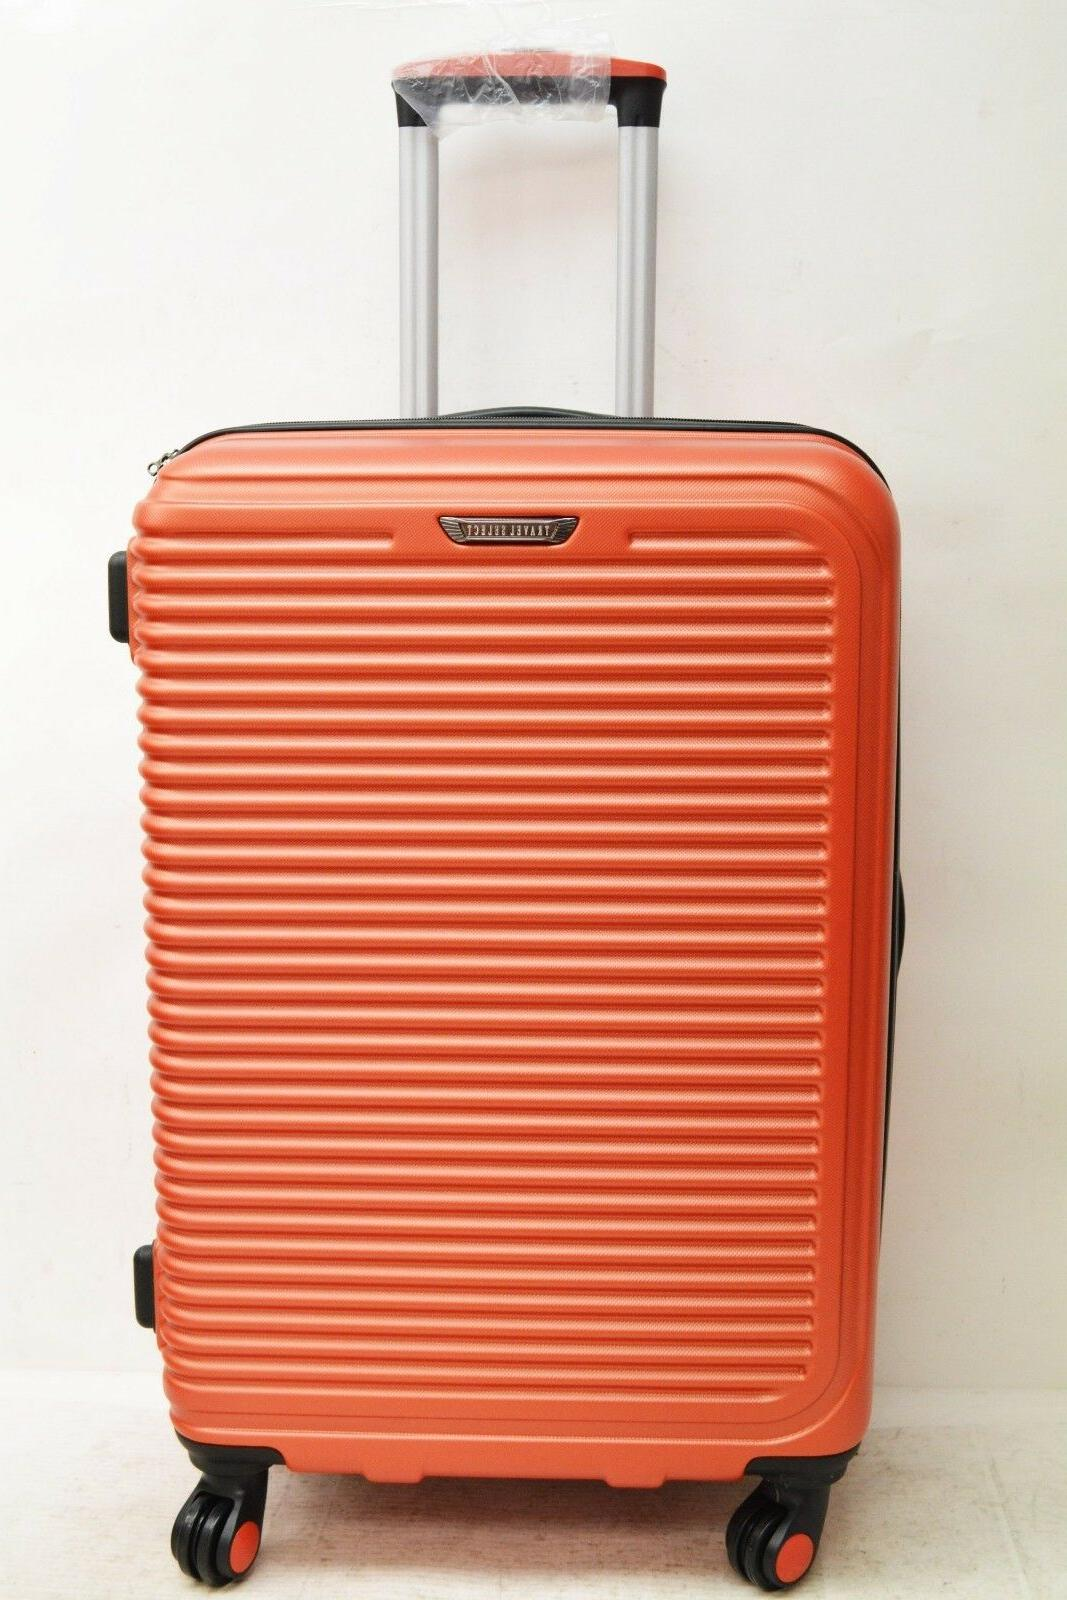 $360 NEW Travel Select Savannah Spinner Luggage Suitcase